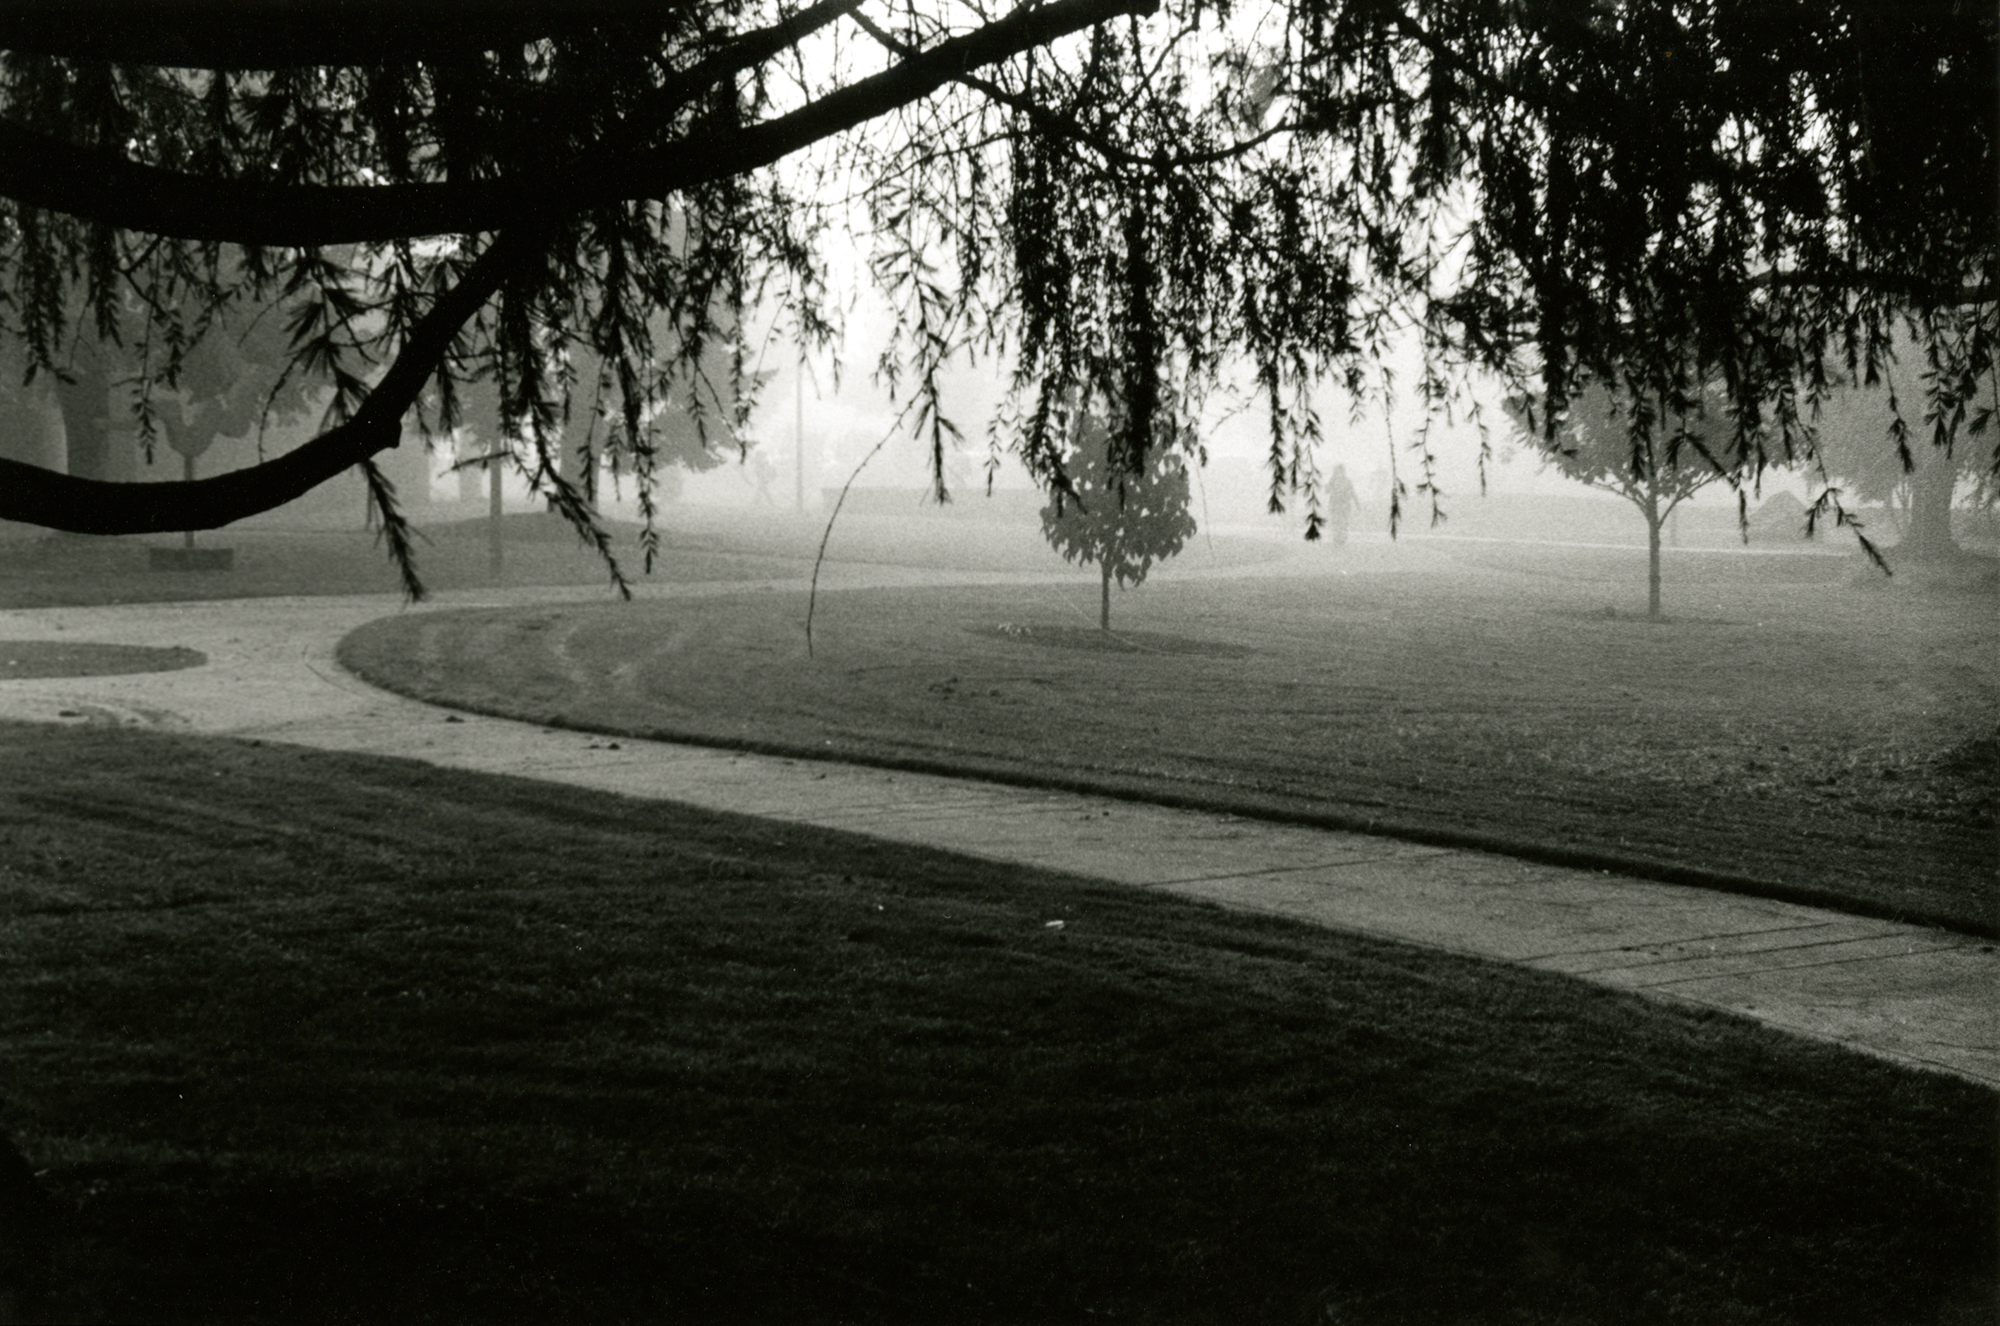 Students walk through Clark College campus on a foggy morning.